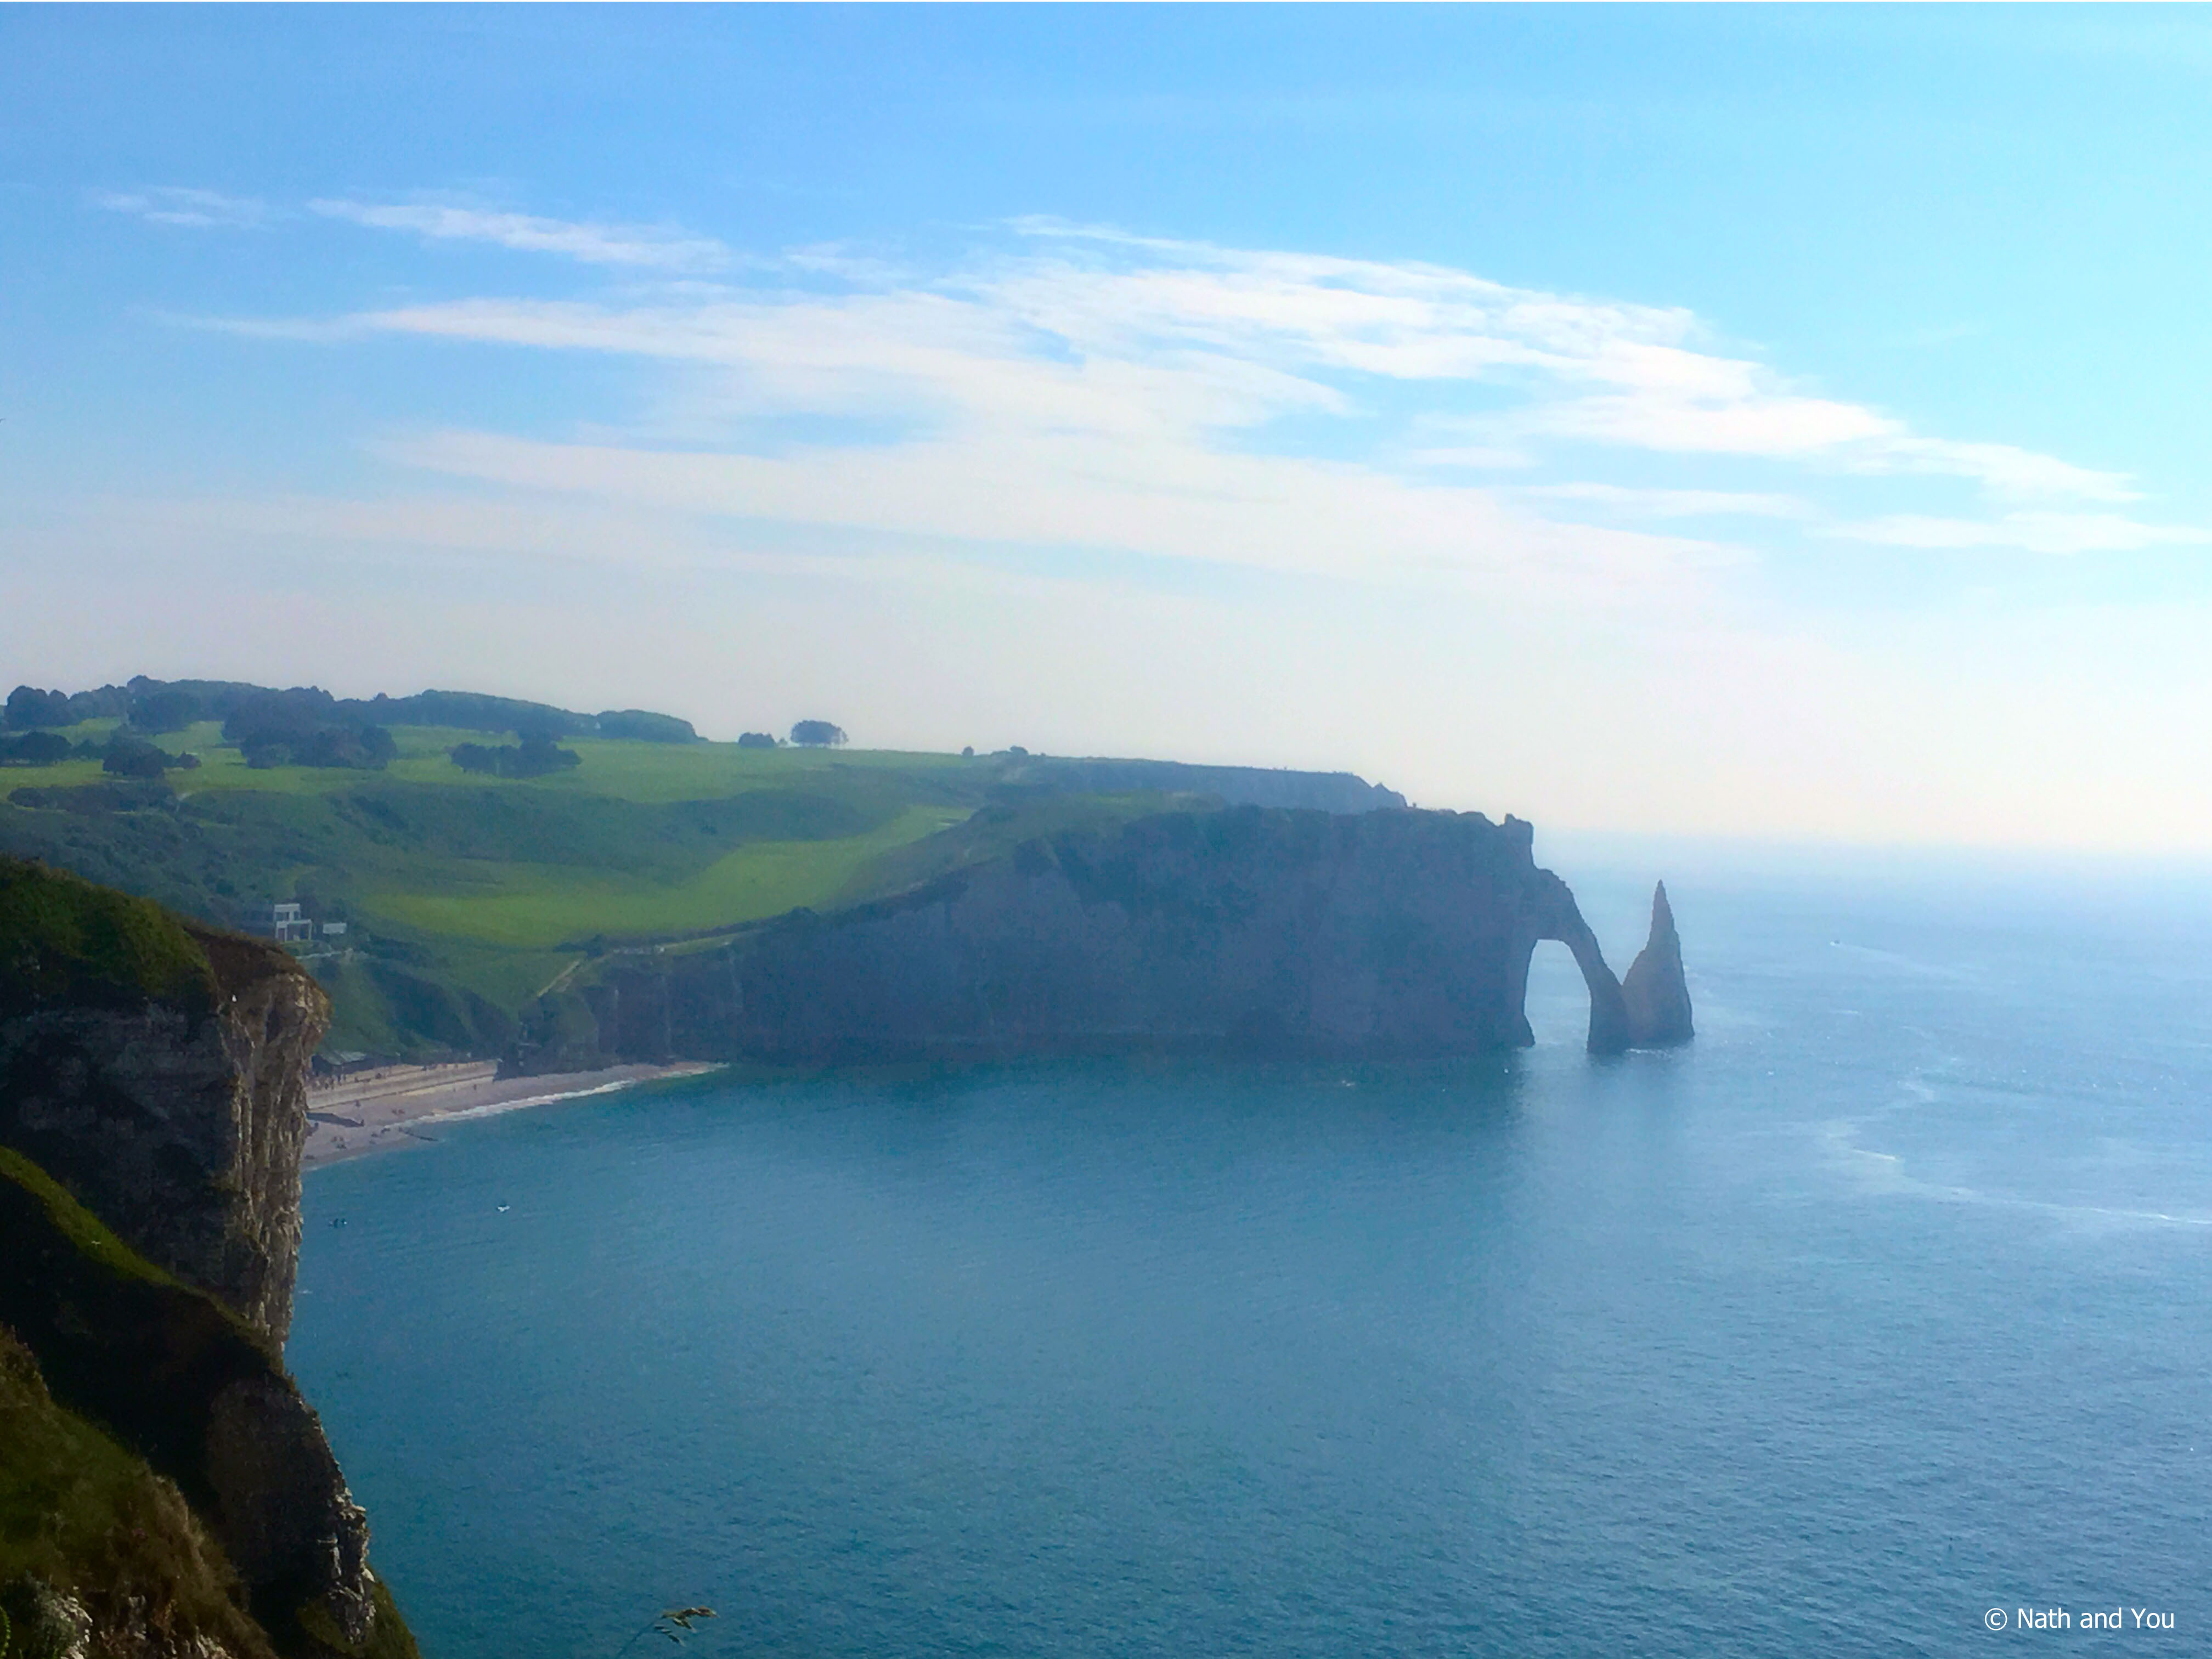 vue-falaises-aval-etretat-nath-and-you